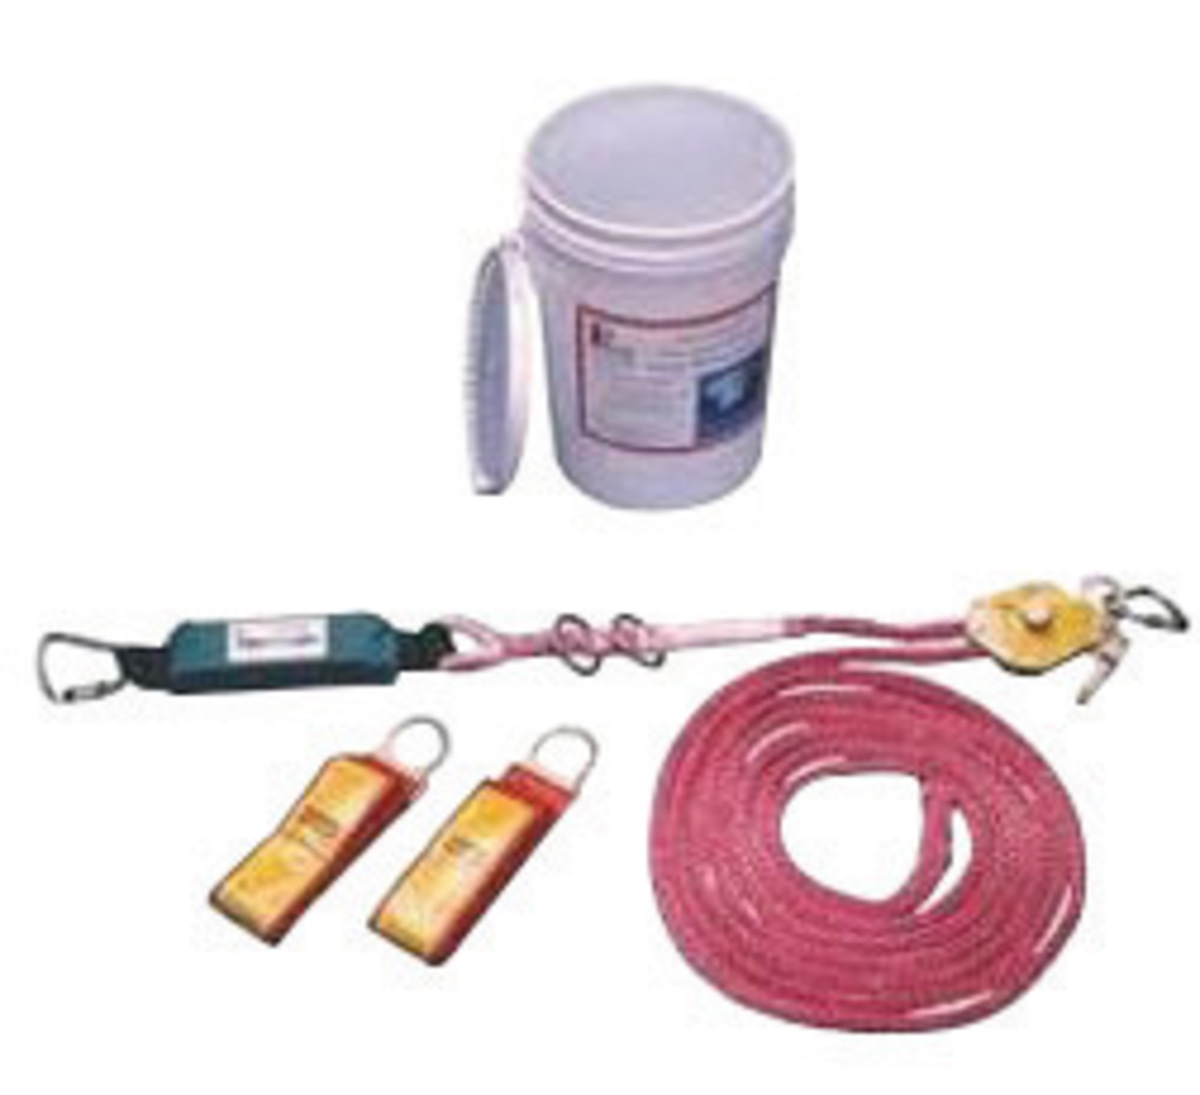 Load Of Fall Arrest Indicator : Airgas msa  gravity dyna line single